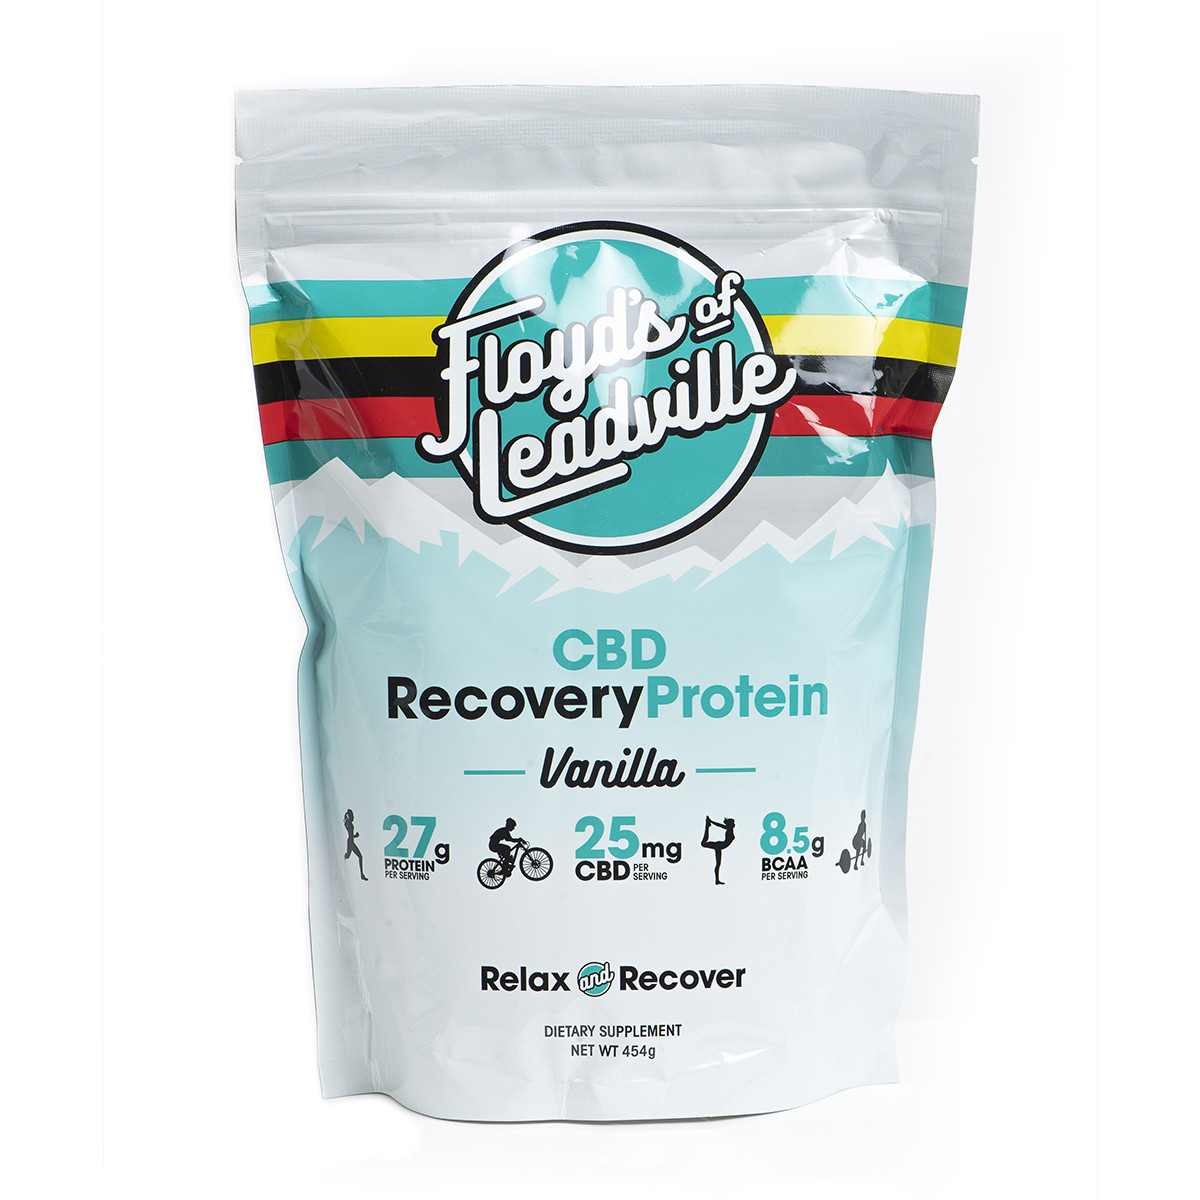 Floyd of Leadville CBD Protein Powder - Vanilla